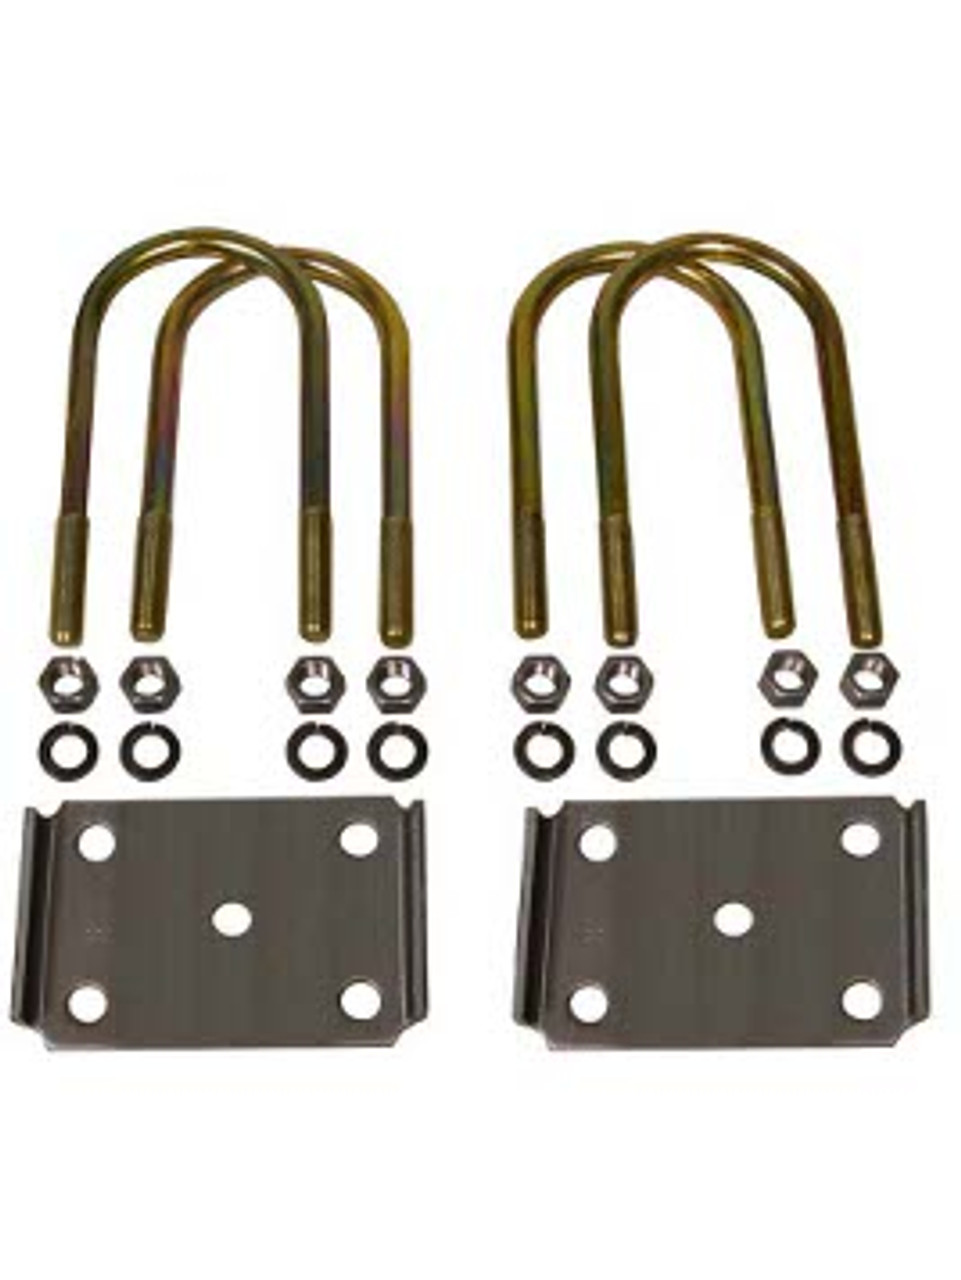 """238-675 --- 2-3/8"""" U-Bolts and Axle Plates for 1-3/4"""" Wide Springs"""